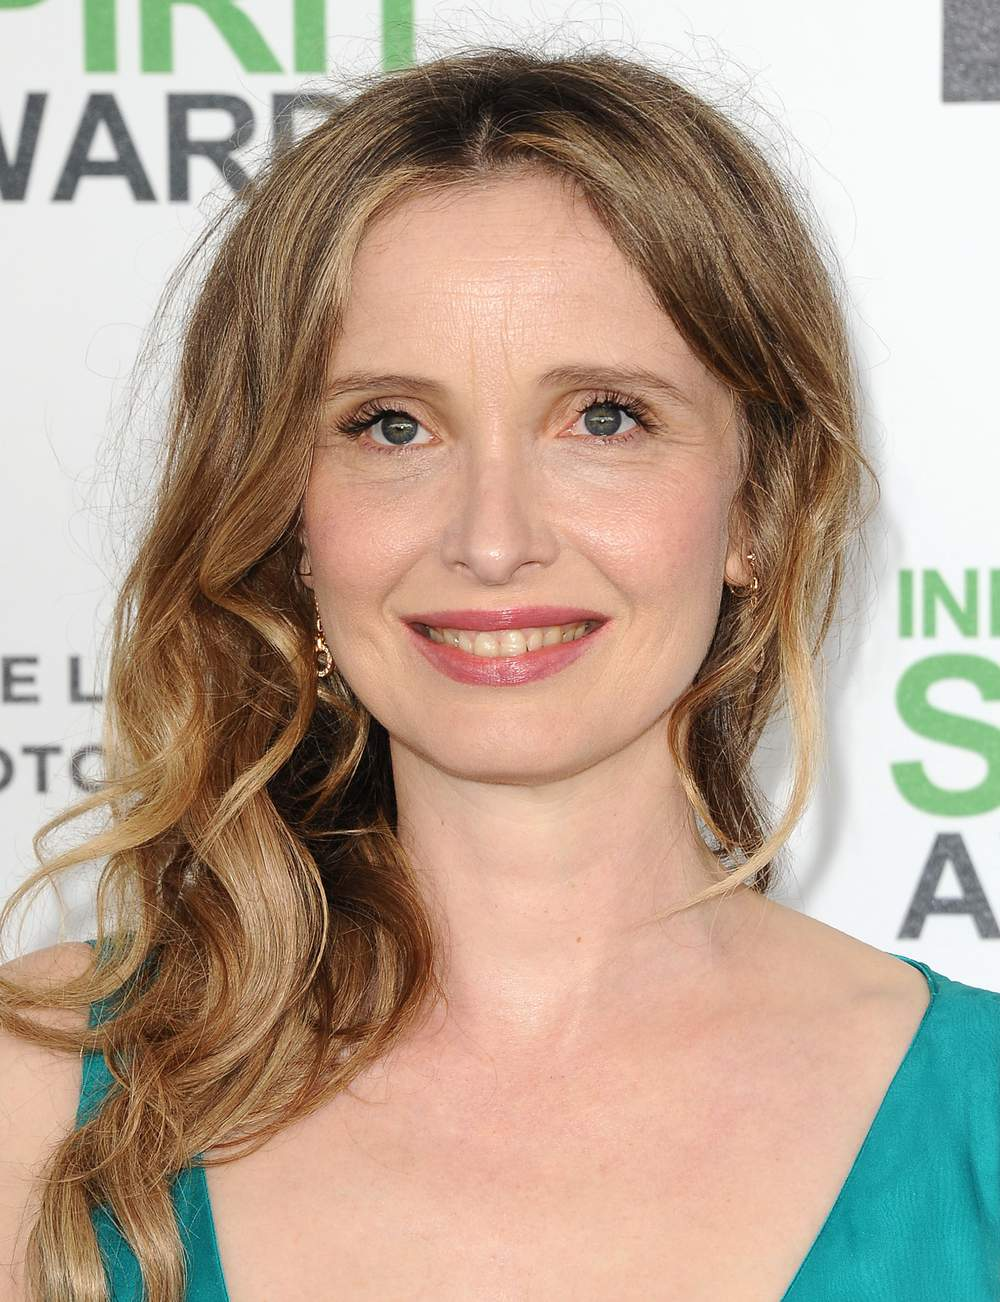 Le side hair ondulé de Julie Delpy